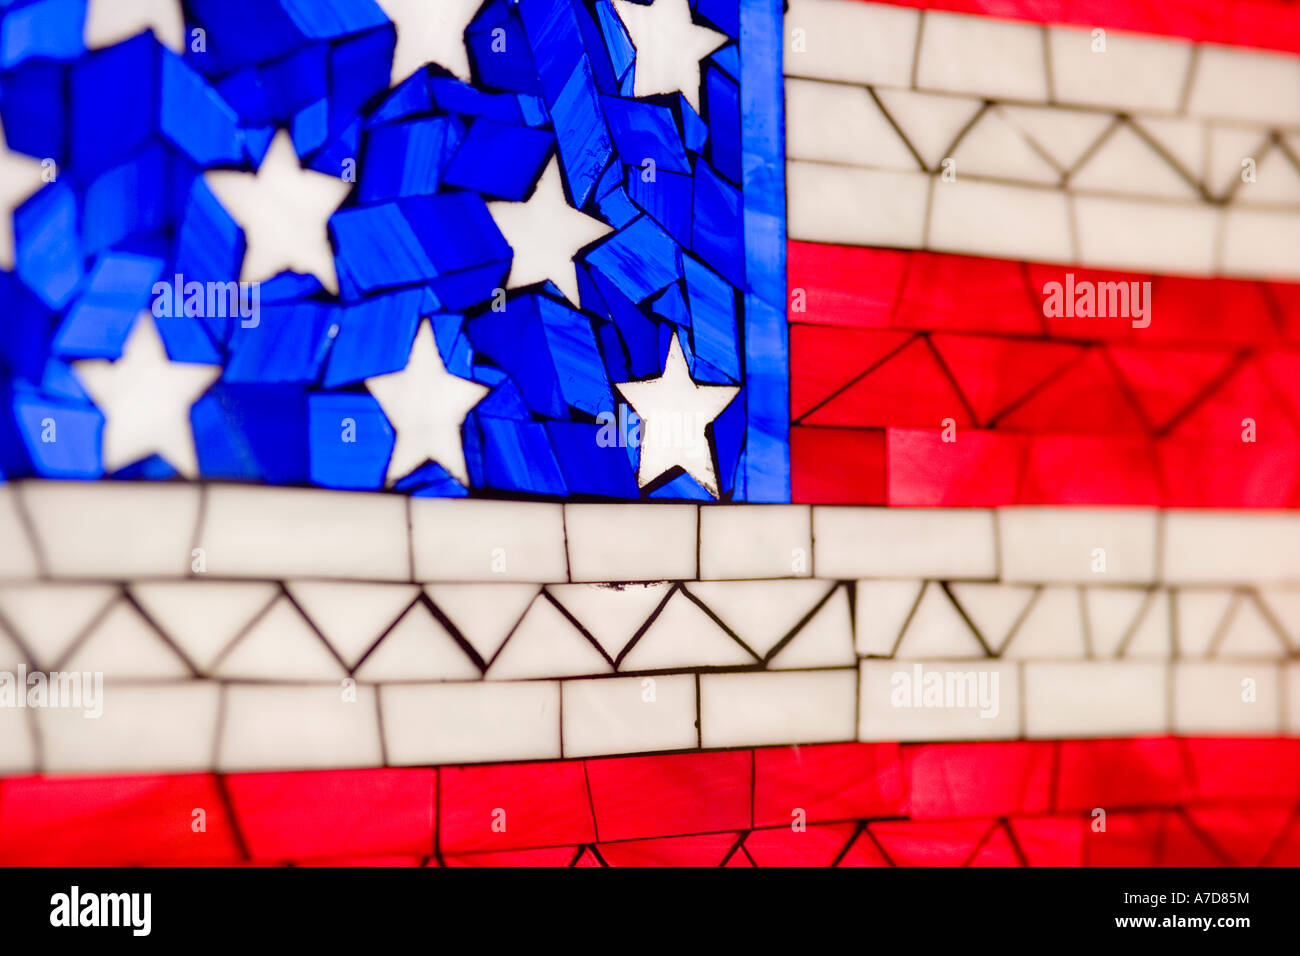 Stained Glass American Flag.Stained Glass Window American Flag Stock Photos Stained